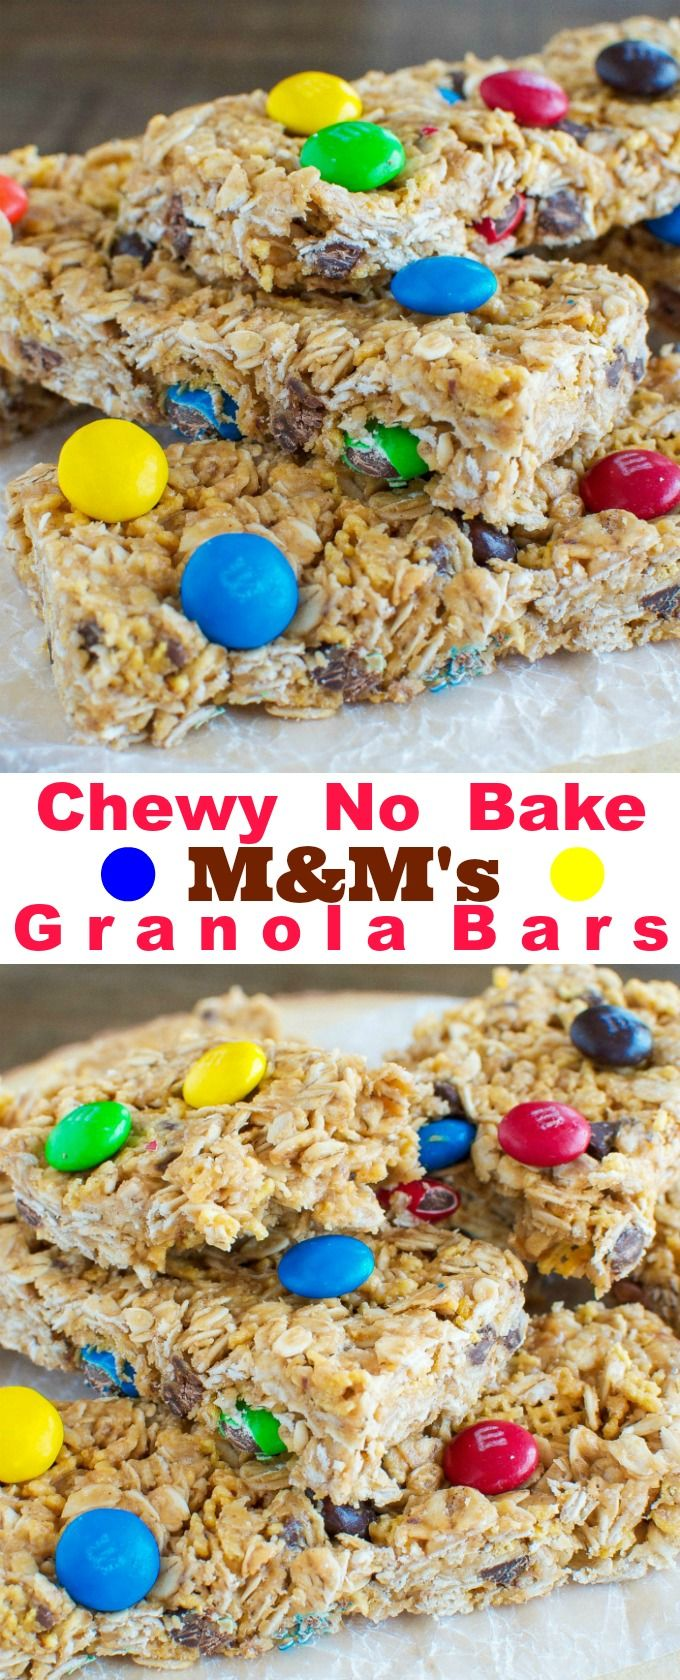 Chewy No Bake Peanut Butter and M&M Granola Bars! Great snack or lunchbox treat! #Promotion